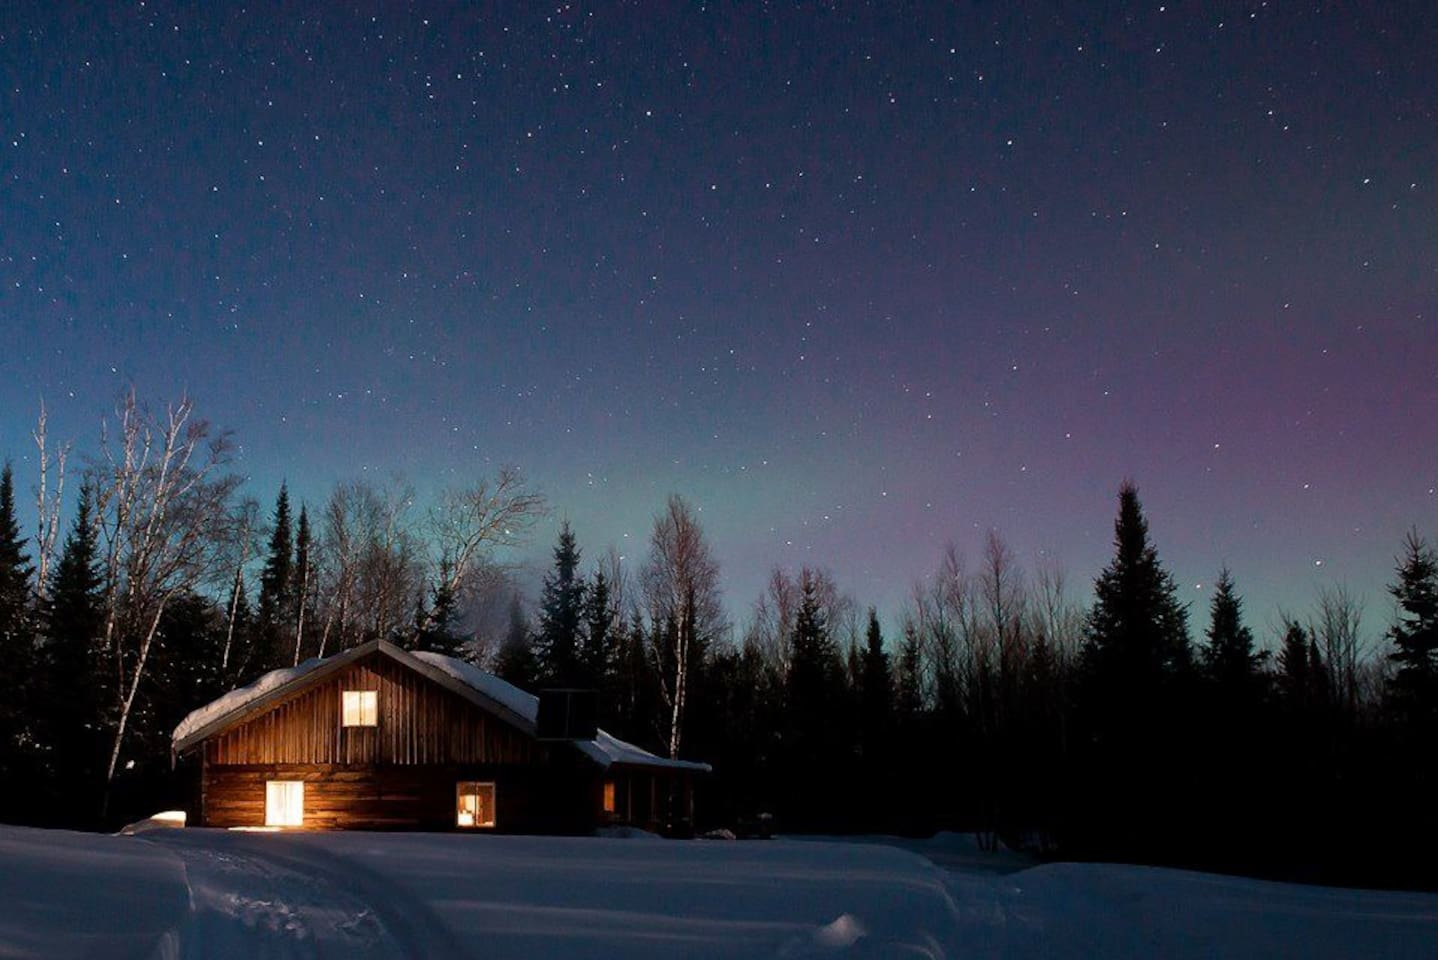 Ma'ayan Chalet on a stary night